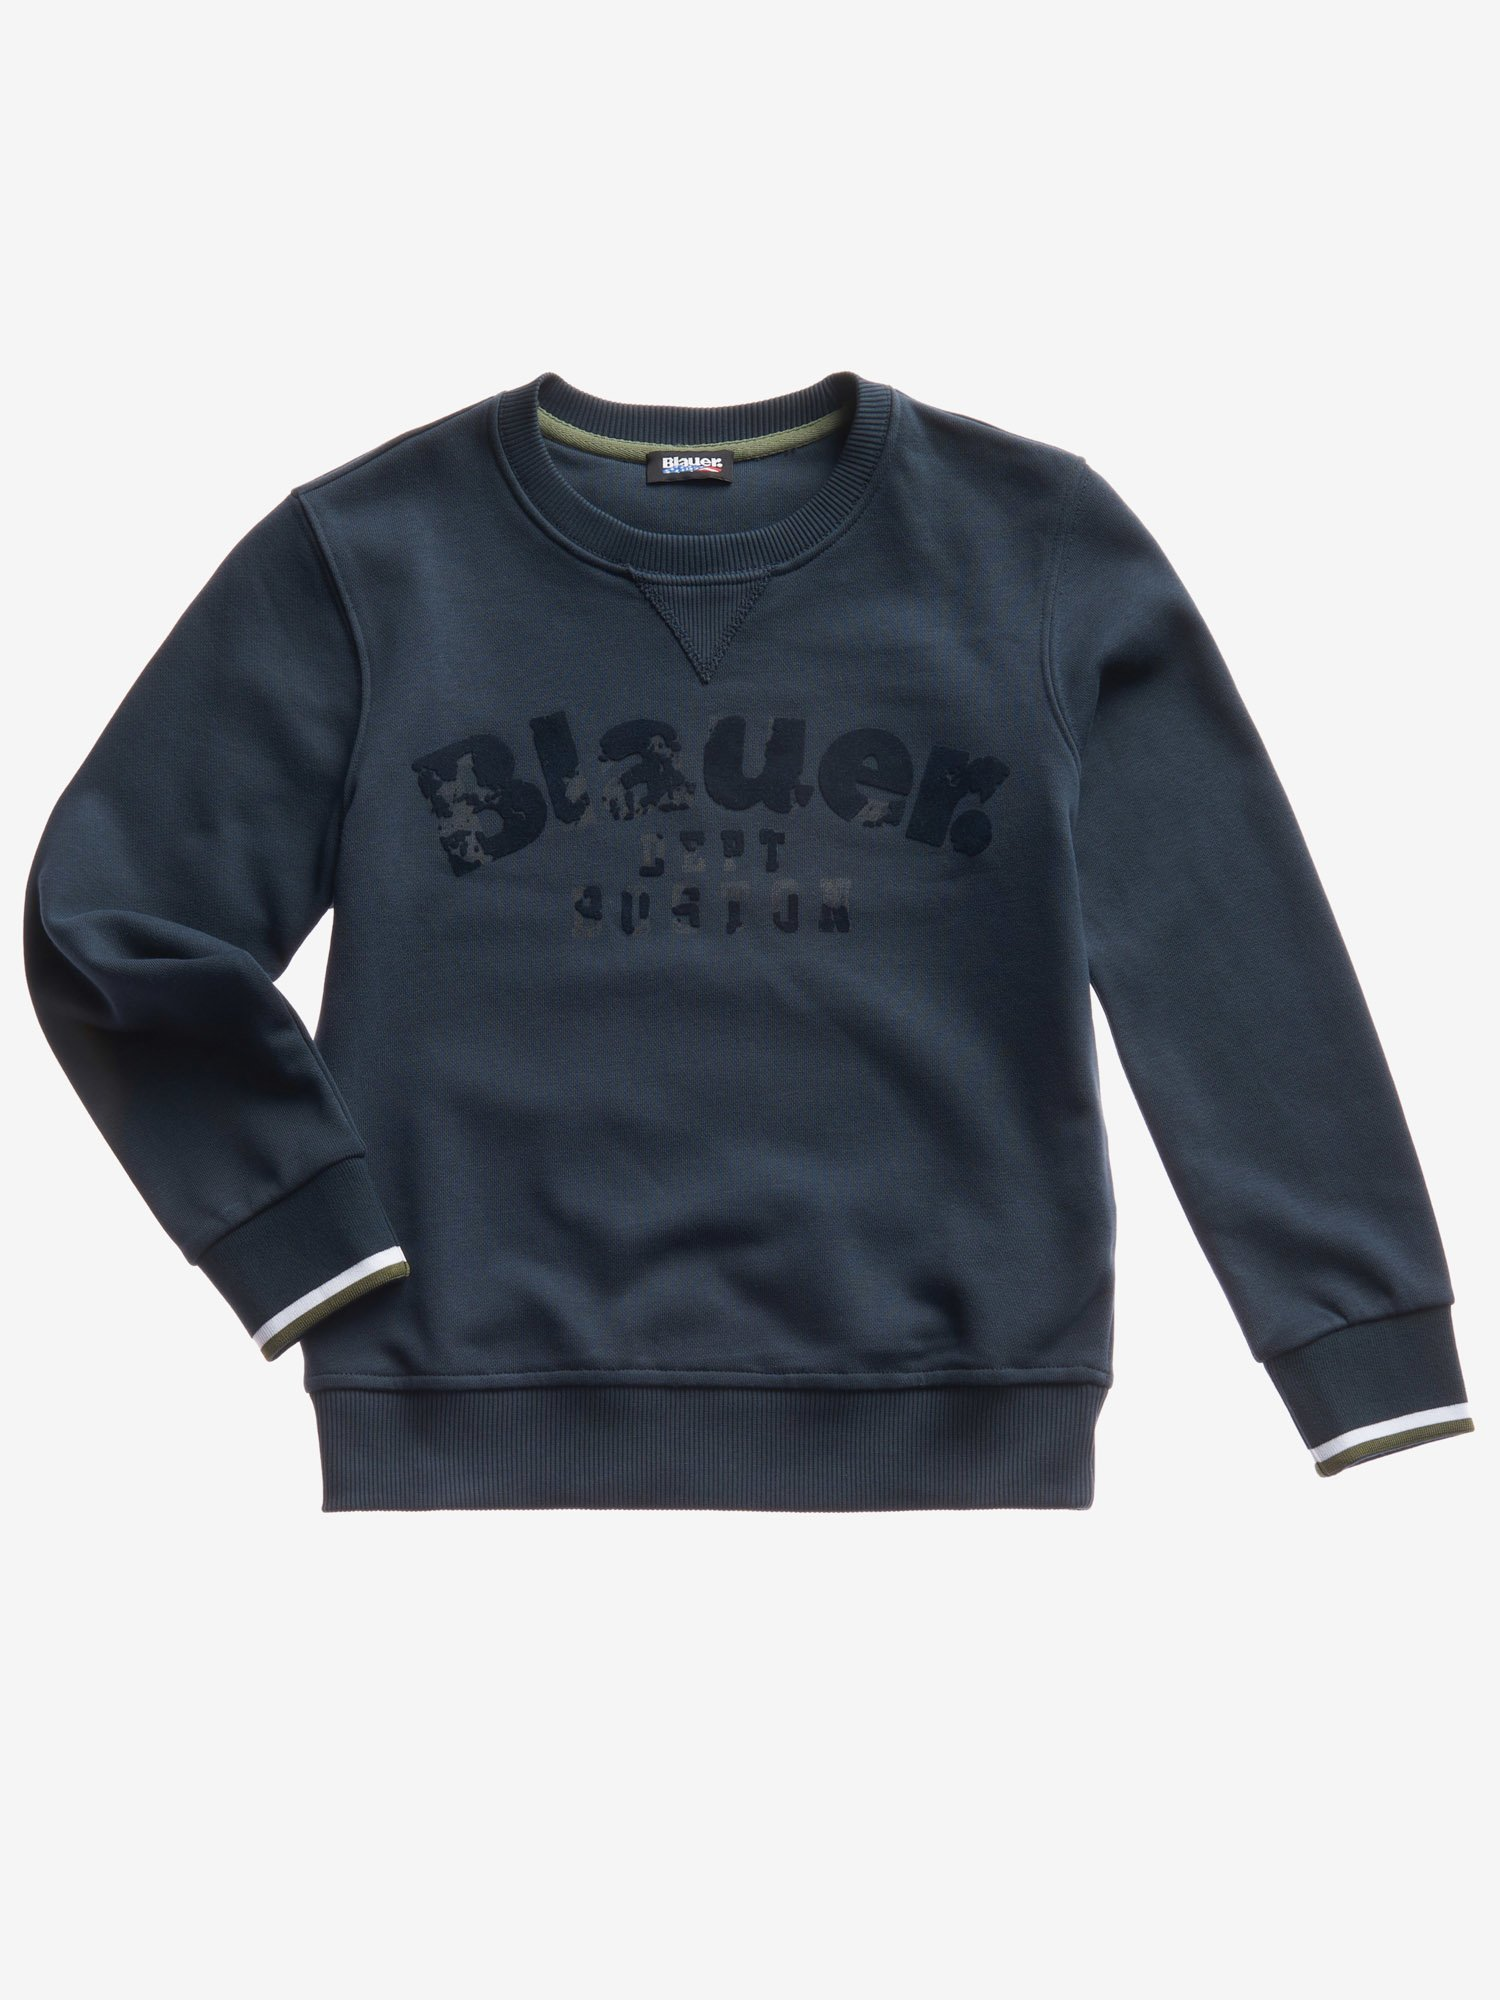 JUNIOR BASIC CREW NECK SWEATSHIRT - Blauer